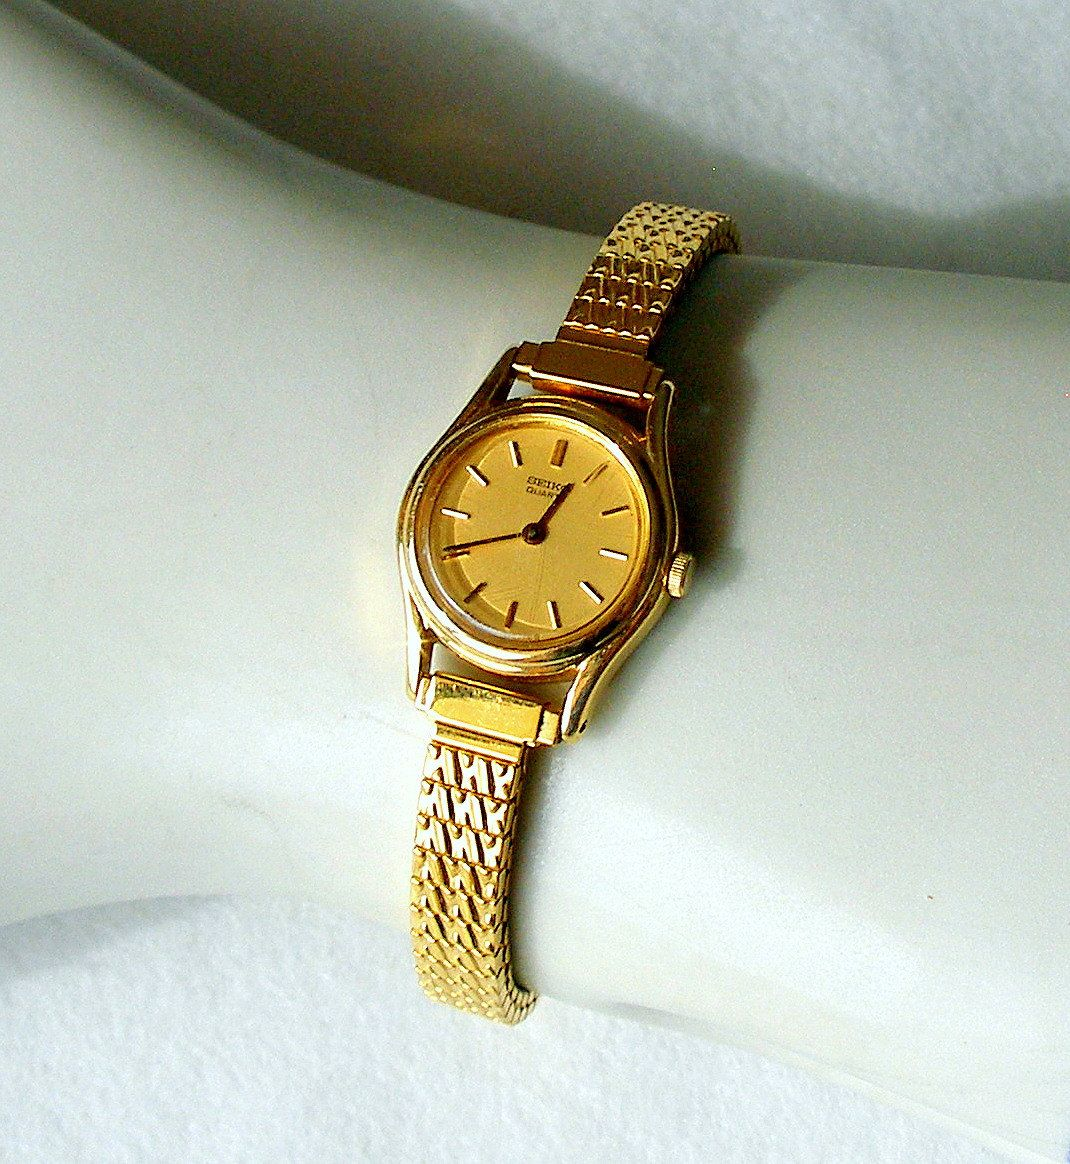 Vintage Women S Seiko Quartz Watch Wear Pinterest